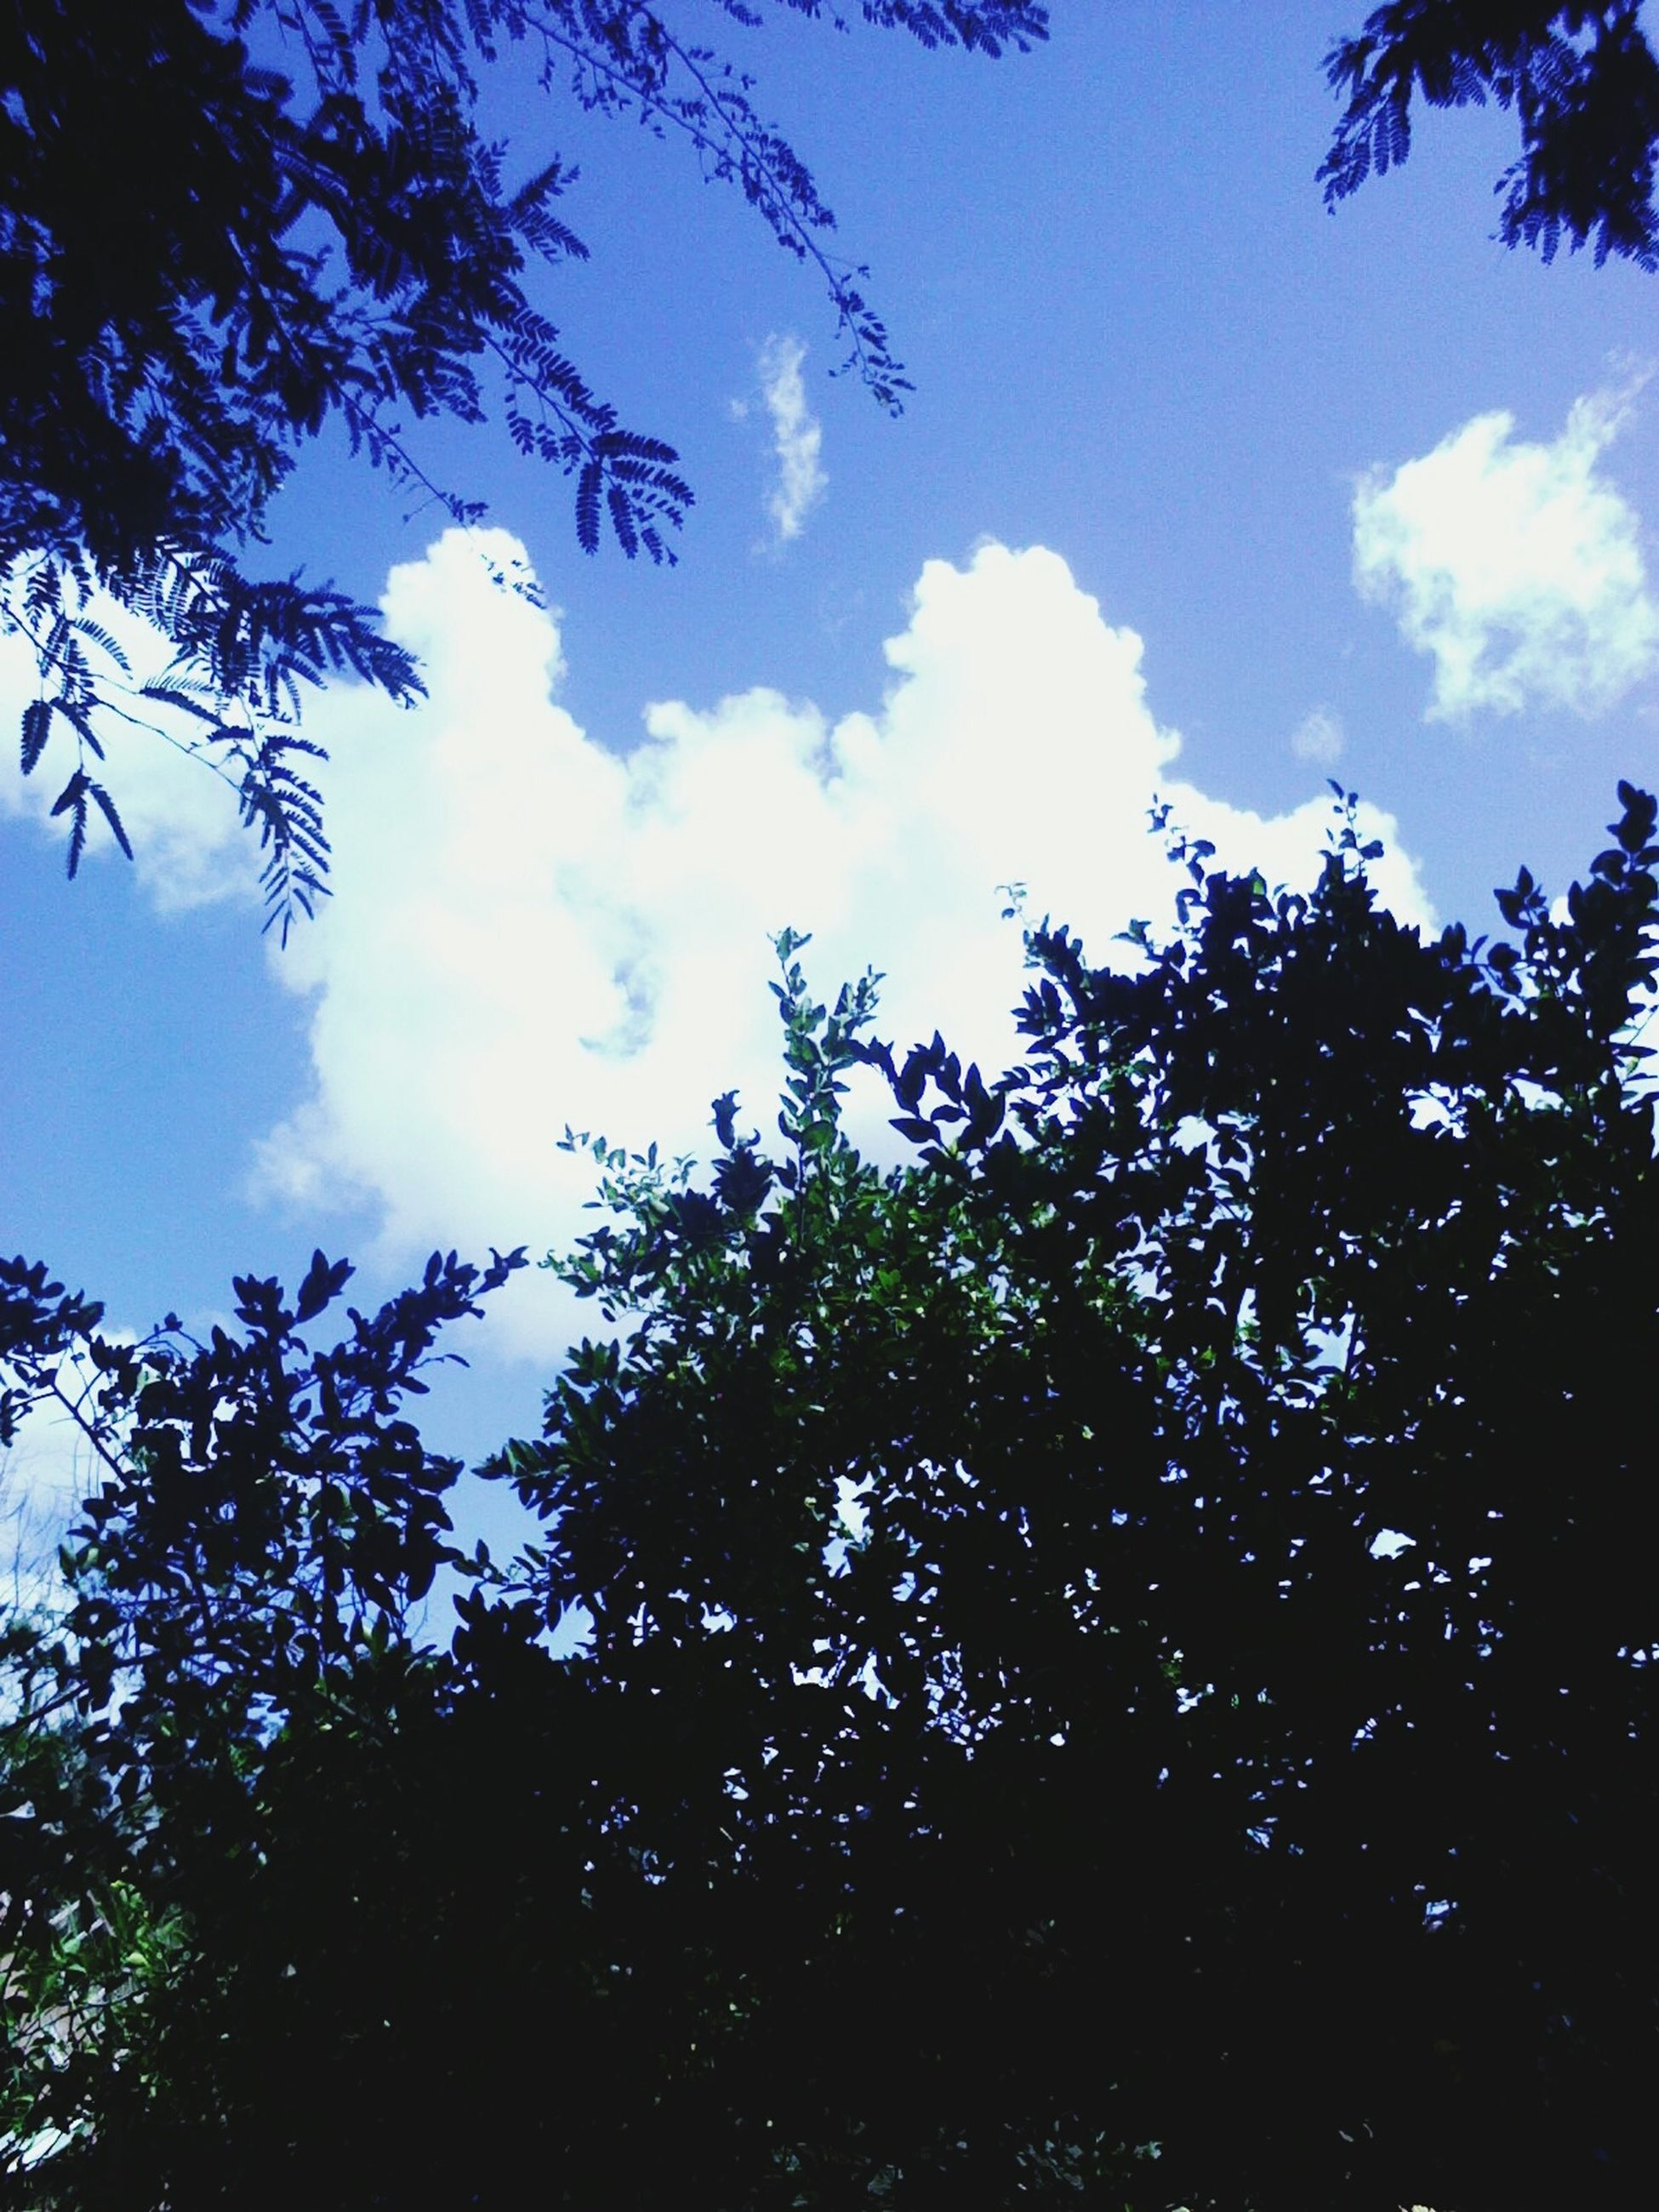 tree, low angle view, sky, branch, growth, beauty in nature, nature, tranquility, silhouette, cloud - sky, blue, cloud, scenics, tranquil scene, outdoors, no people, high section, day, treetop, idyllic